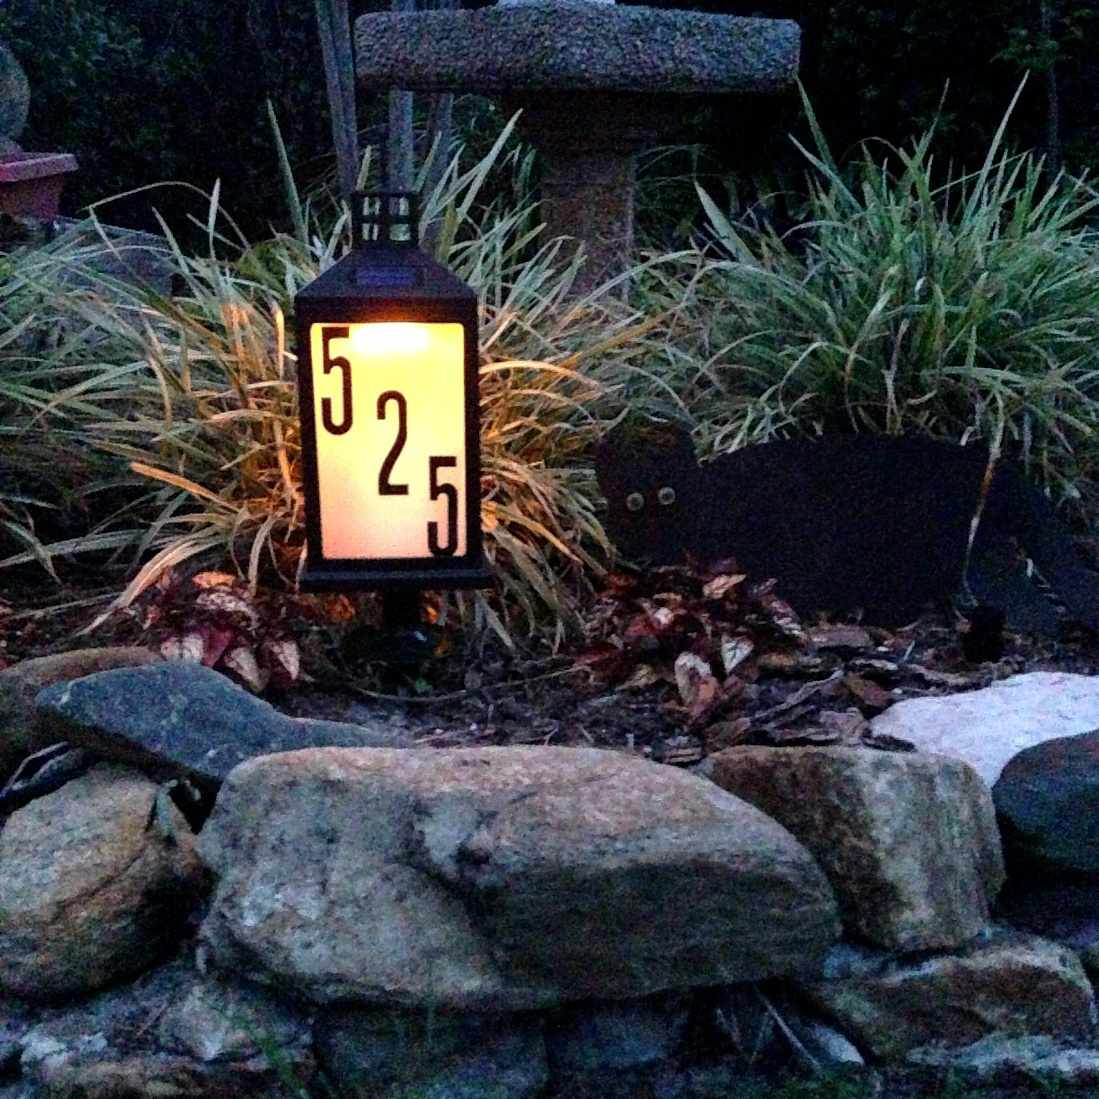 A solar lamp with address numbers on it.